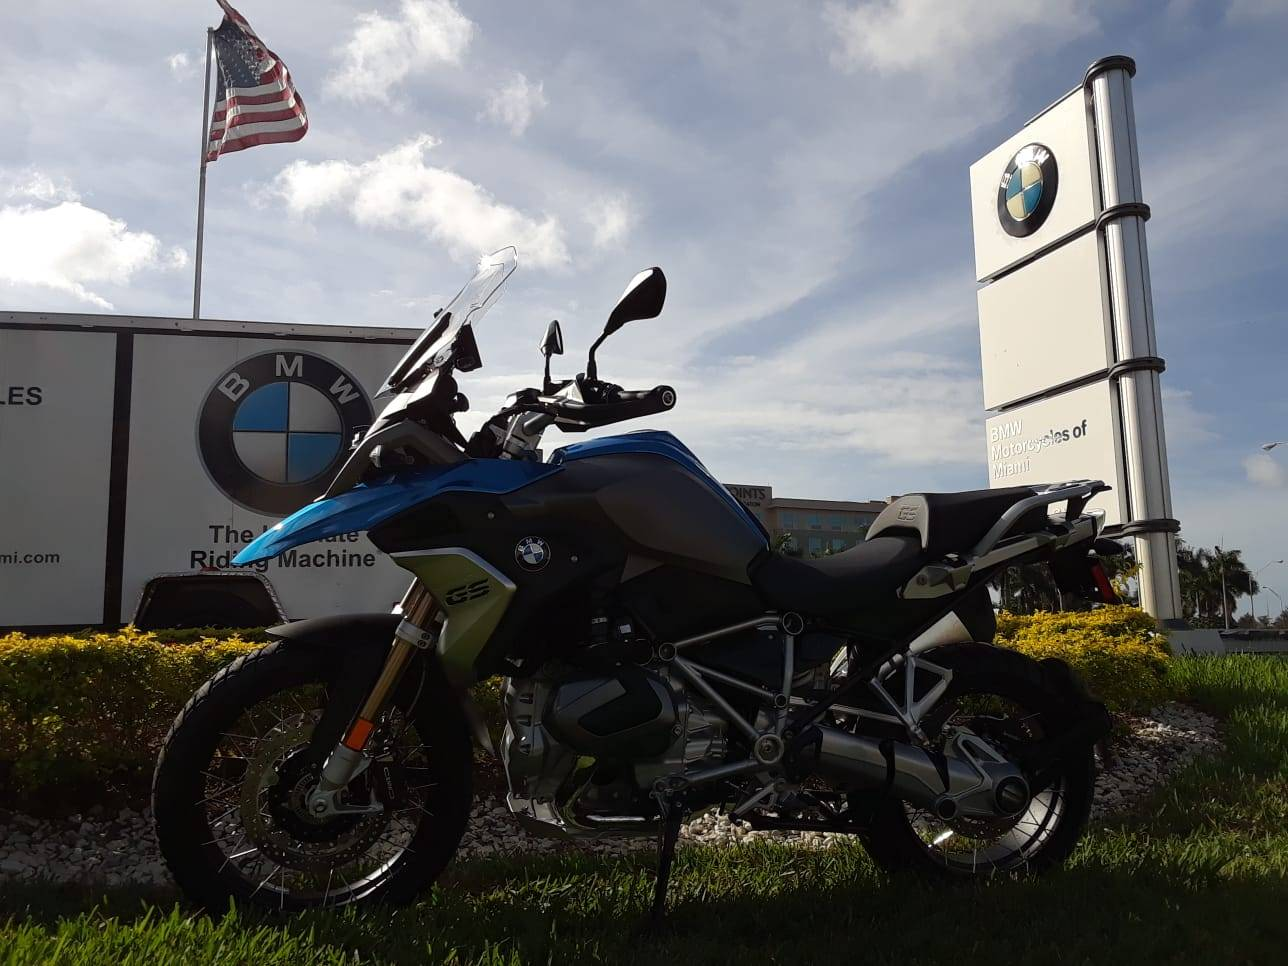 New 2019 BMW R 1250 GS for sale, New BMW R 1250GS, BMW R1250GS for sale, 1250GS, R1250GS, BMW Motorcycles of Miami, Motorcycles of Miami. Motorcycles Miami - Photo 8